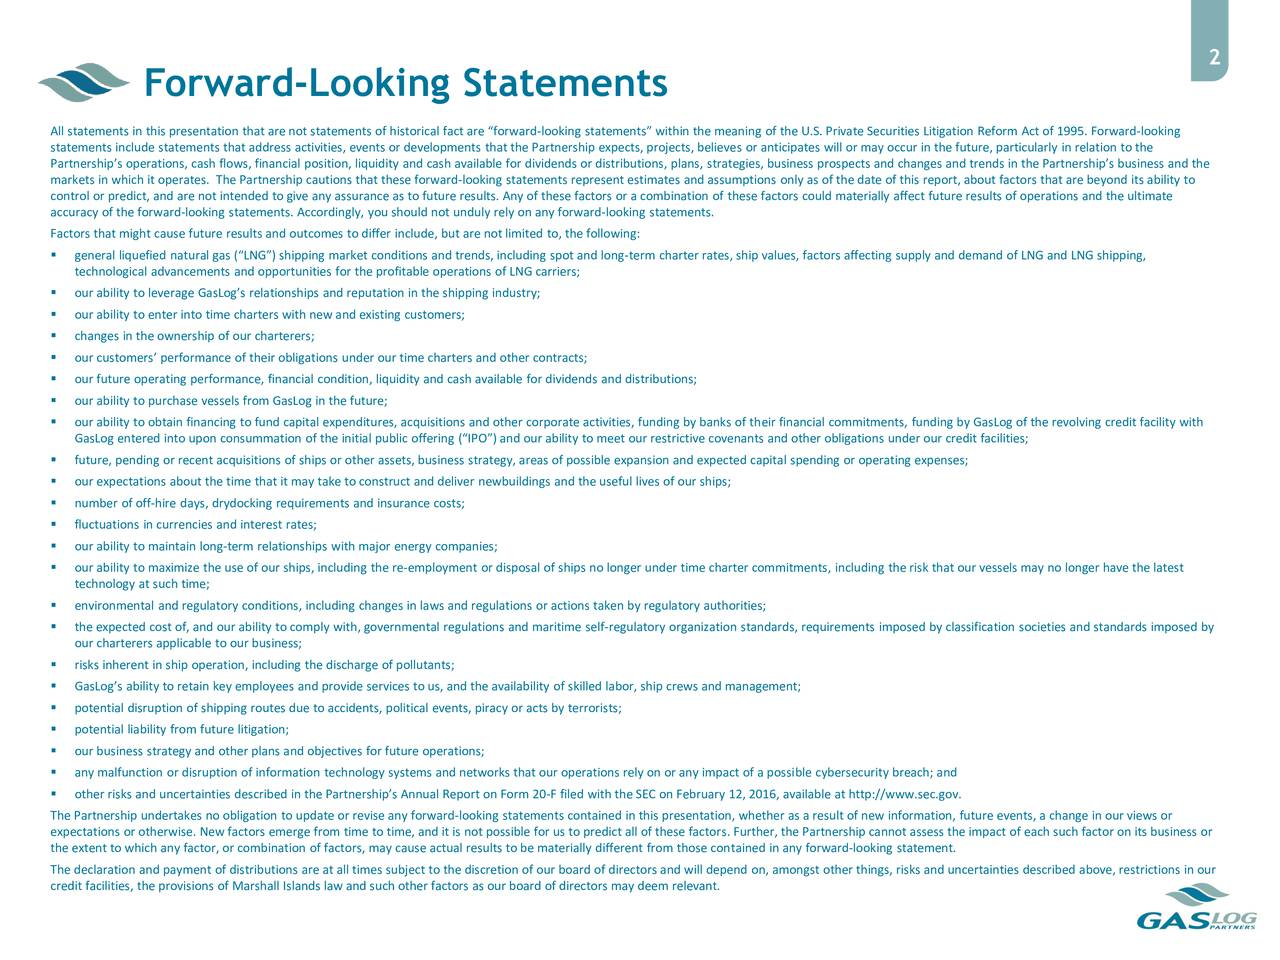 Forward-Looking Statements All statements in this presentation that are not statements of historical fact are forward-looking statements within the meaning of the U.S. Private Securities Litigation Reform Act of 1995. Forward-looking statements include statements that address activities, events or developments that the Partnership expects, projects, believes or anticipates will or may occur in the future, particularly in relation to the Partnerships operations, cash flows, financial position, liquidity and cash available for dividends or distributions, plans, strategies, business prospects and changes and trends in the Partnerships business and the markets in which it operates. The Partnership cautions that these forward-looking statements represent estimates and assumptions only as of the date of this report, about factors that are beyond its ability to control or predict, and are not intended to give any assurance as to future results. Any of these factors or a combination of these factors could materially affect future results of operations and the ultimate accuracy of the forward-looking statements. Accordingly, you should not unduly rely on any forward-looking statements. Factors that might cause future results and outcomes to differ include, but are not limited to, the following: general liquefied natural gas (LNG) shipping market conditions and trends, including spot and long-term charter rates, ship values, factors affecting supply and demand of LNG and LNG shipping, technological advancements and opportunities for the profitable operations of LNG carriers; our ability to leverage GasLogs relationships and reputation in the shipping industry; our ability to enter into time charters with new and existing customers; changes in the ownership of our charterers; our customers performance of their obligations under our time charters and other contracts; our future operating performance, financial condition, liquidity and cash available for dividends and distributi